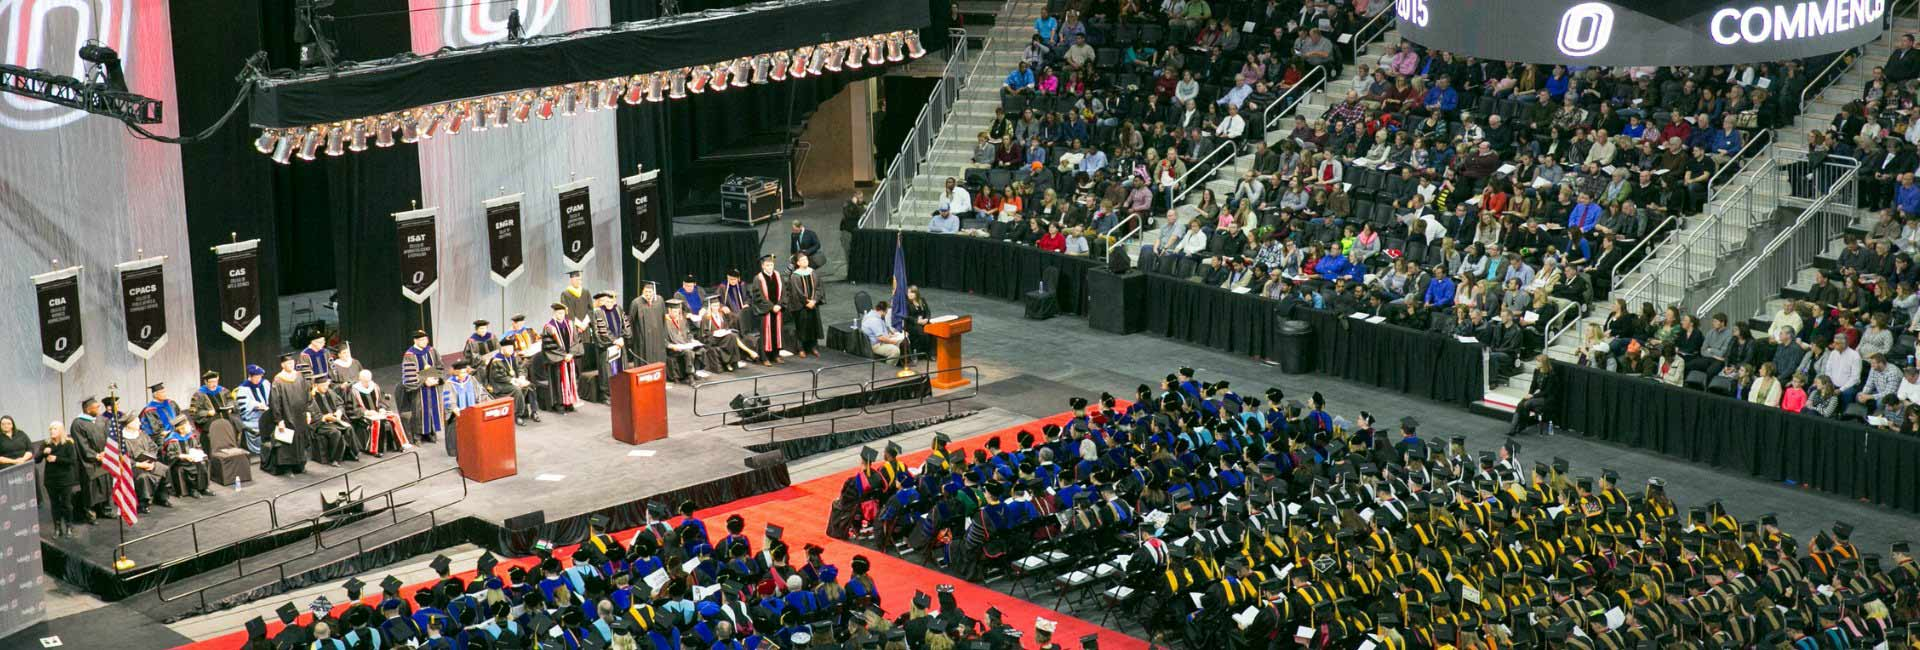 Commencement at Baxter Arena | May 6